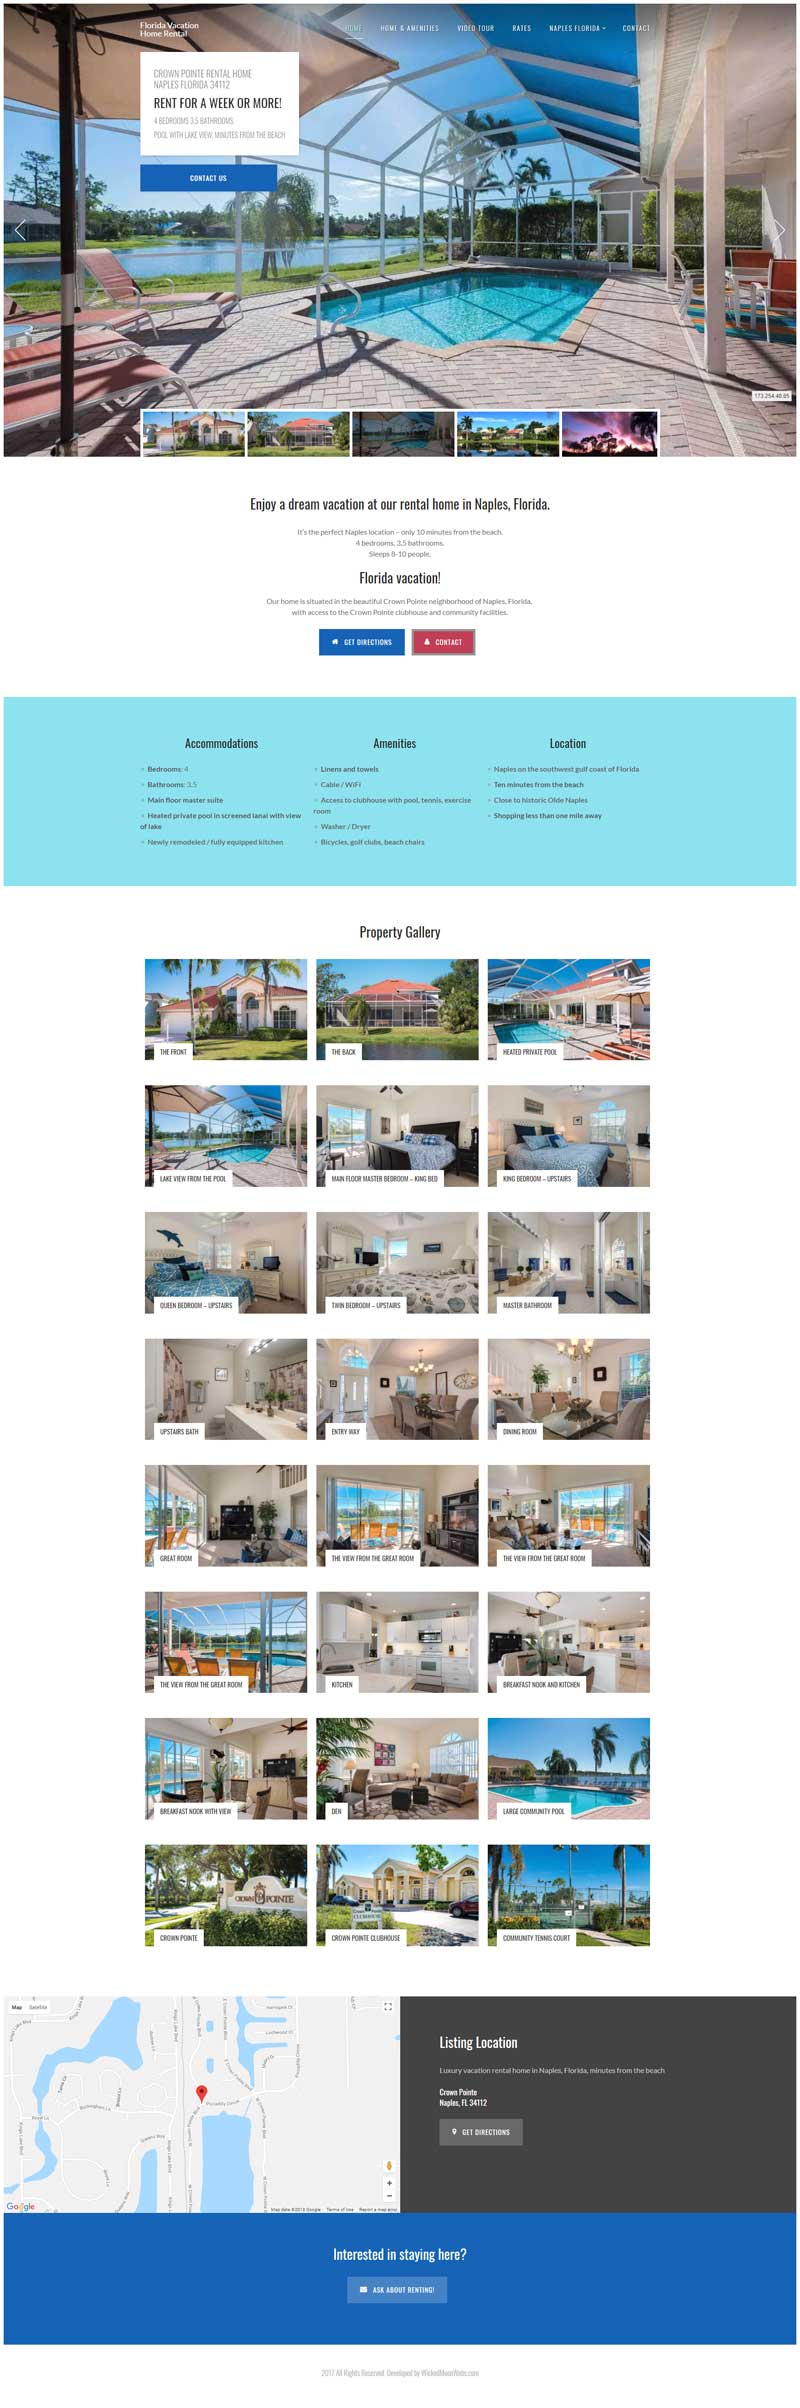 Website for Vacation Rental Home